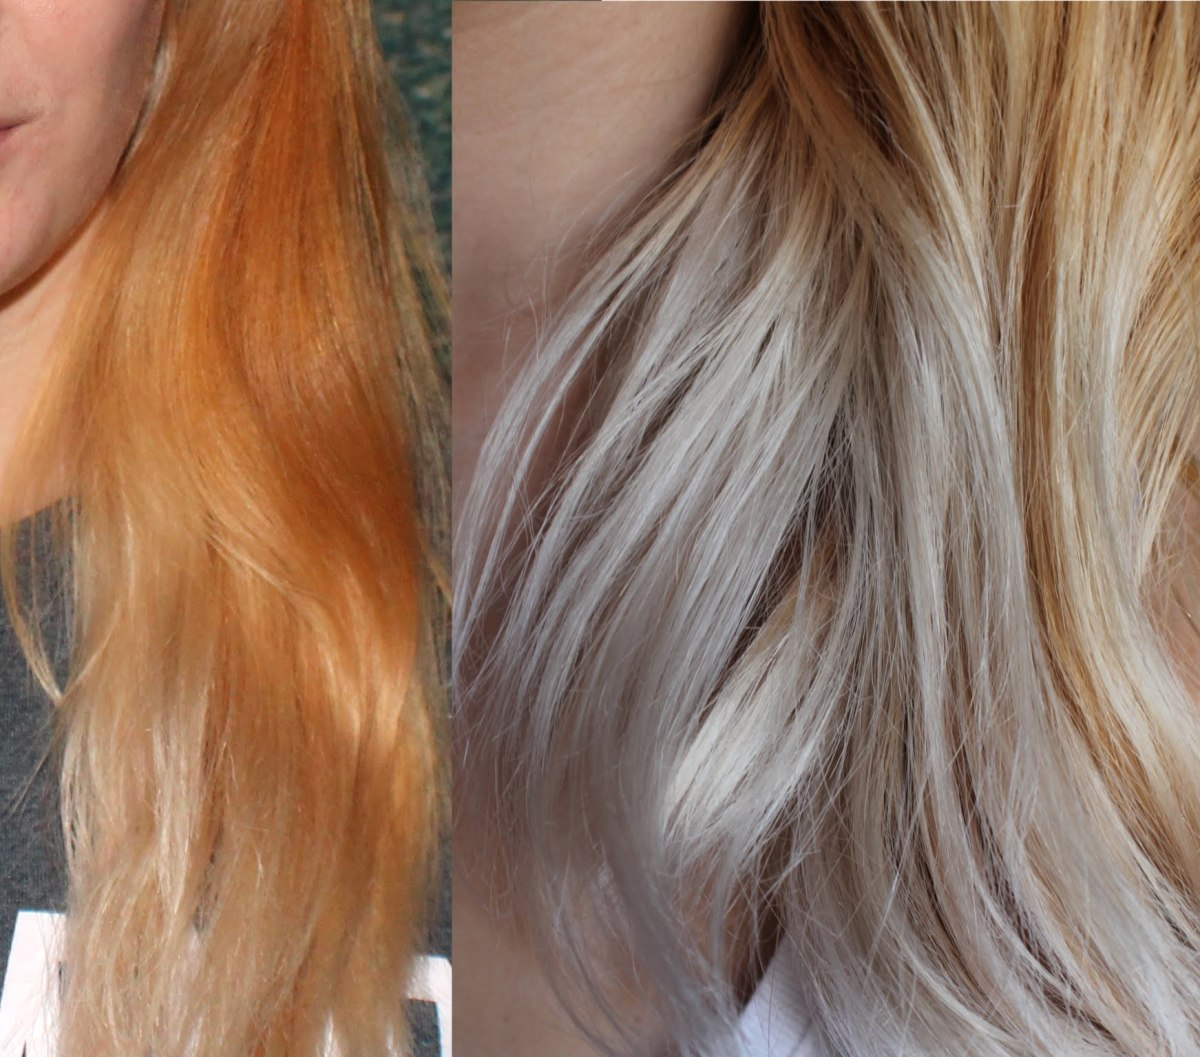 Pre- and Post-Toner Locks!